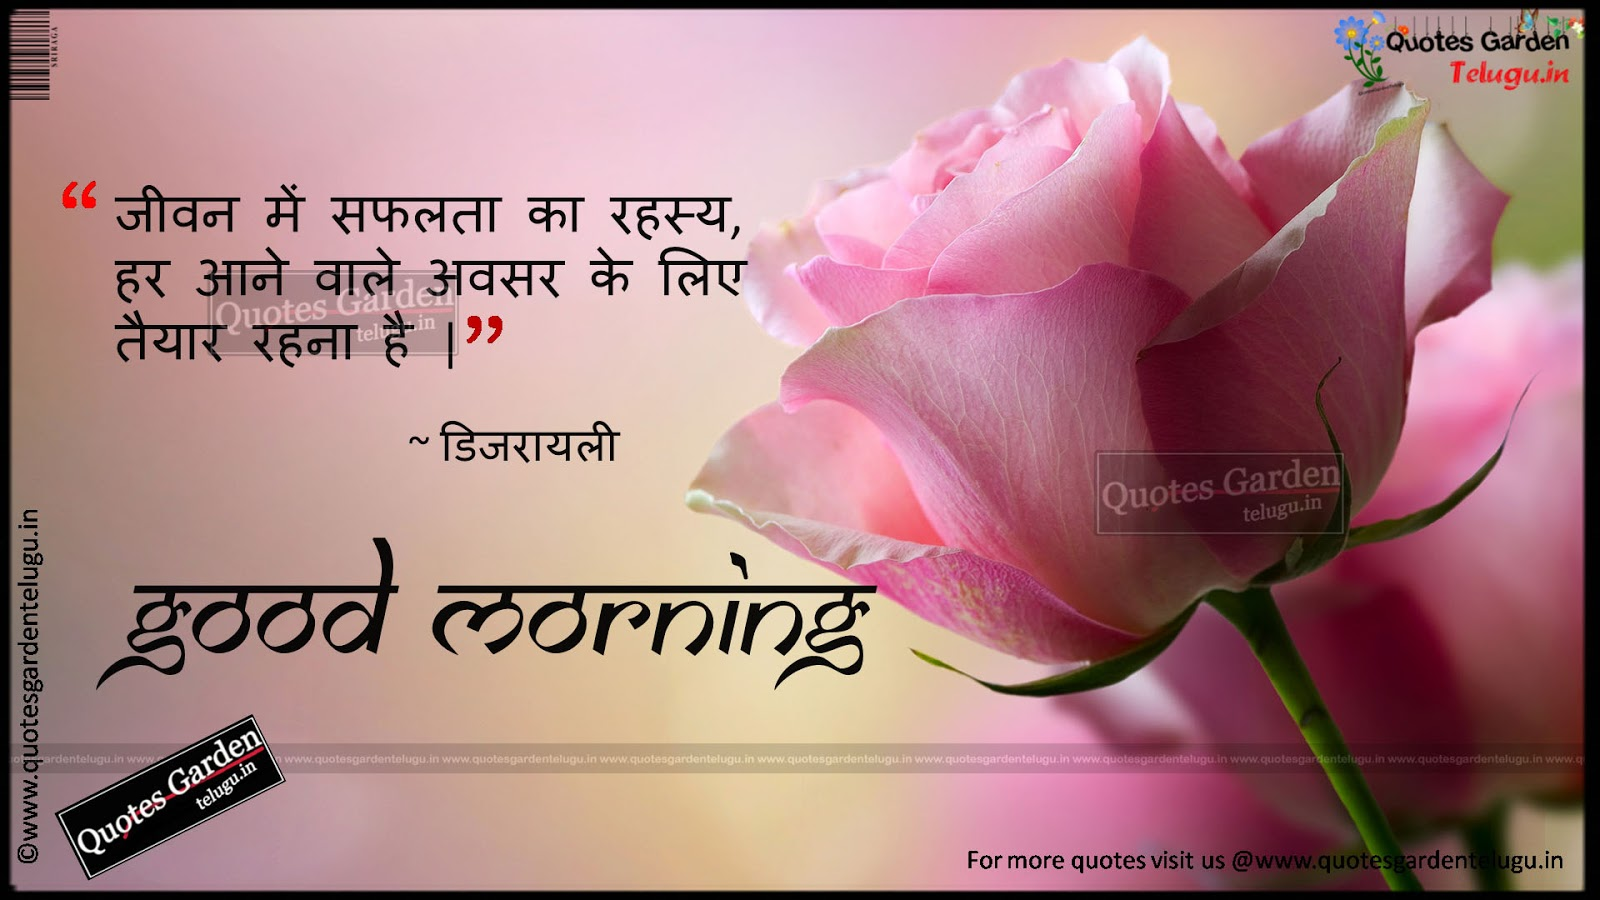 Garden Love Quotes Good Morning Hindi Quote Messages  Inspiring Quotes And Words In Life